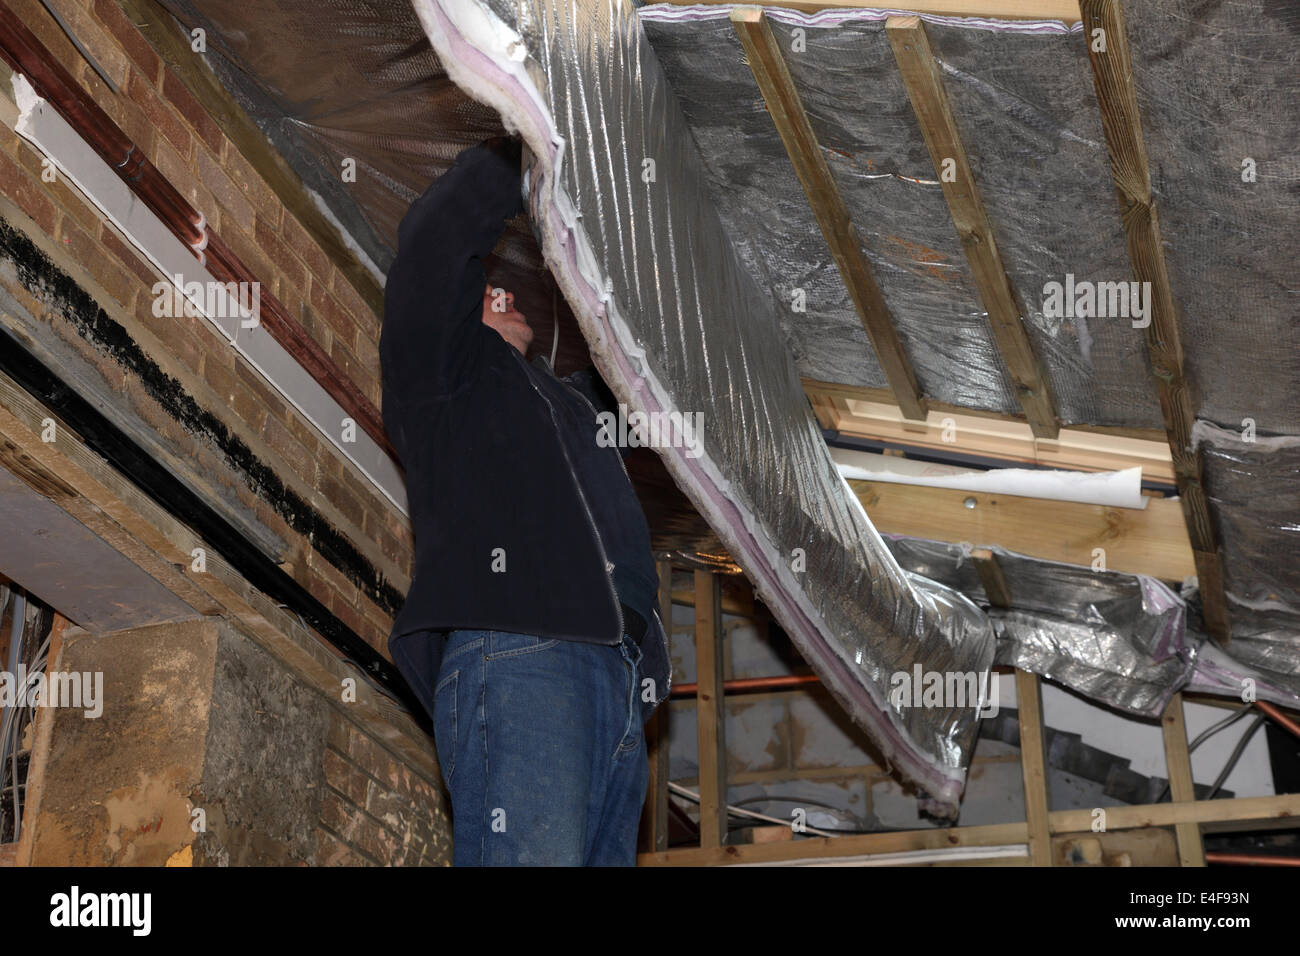 Workman installing foil insulation in a roof space. - Stock Image